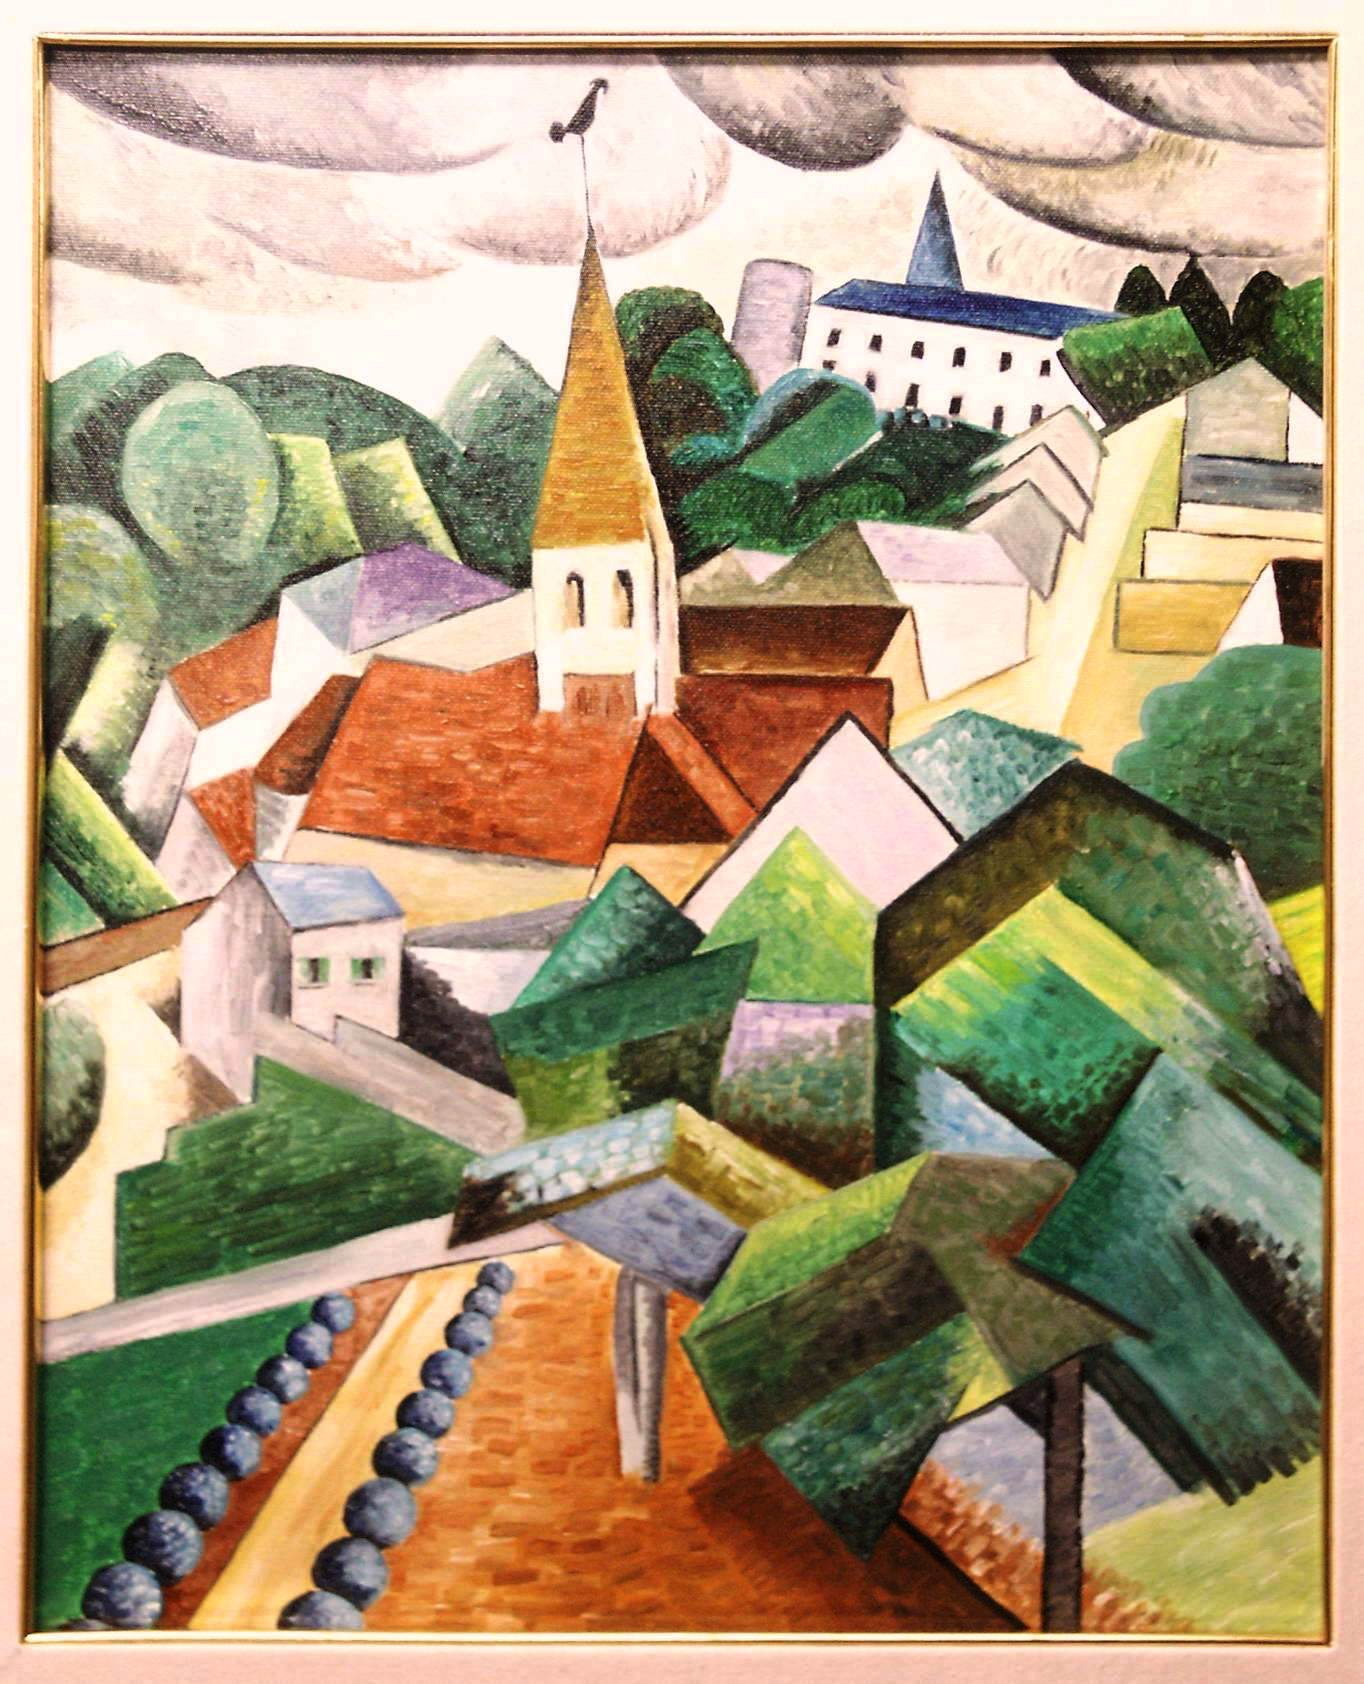 Villaggio di collina herbin auguste for Auguste herbin